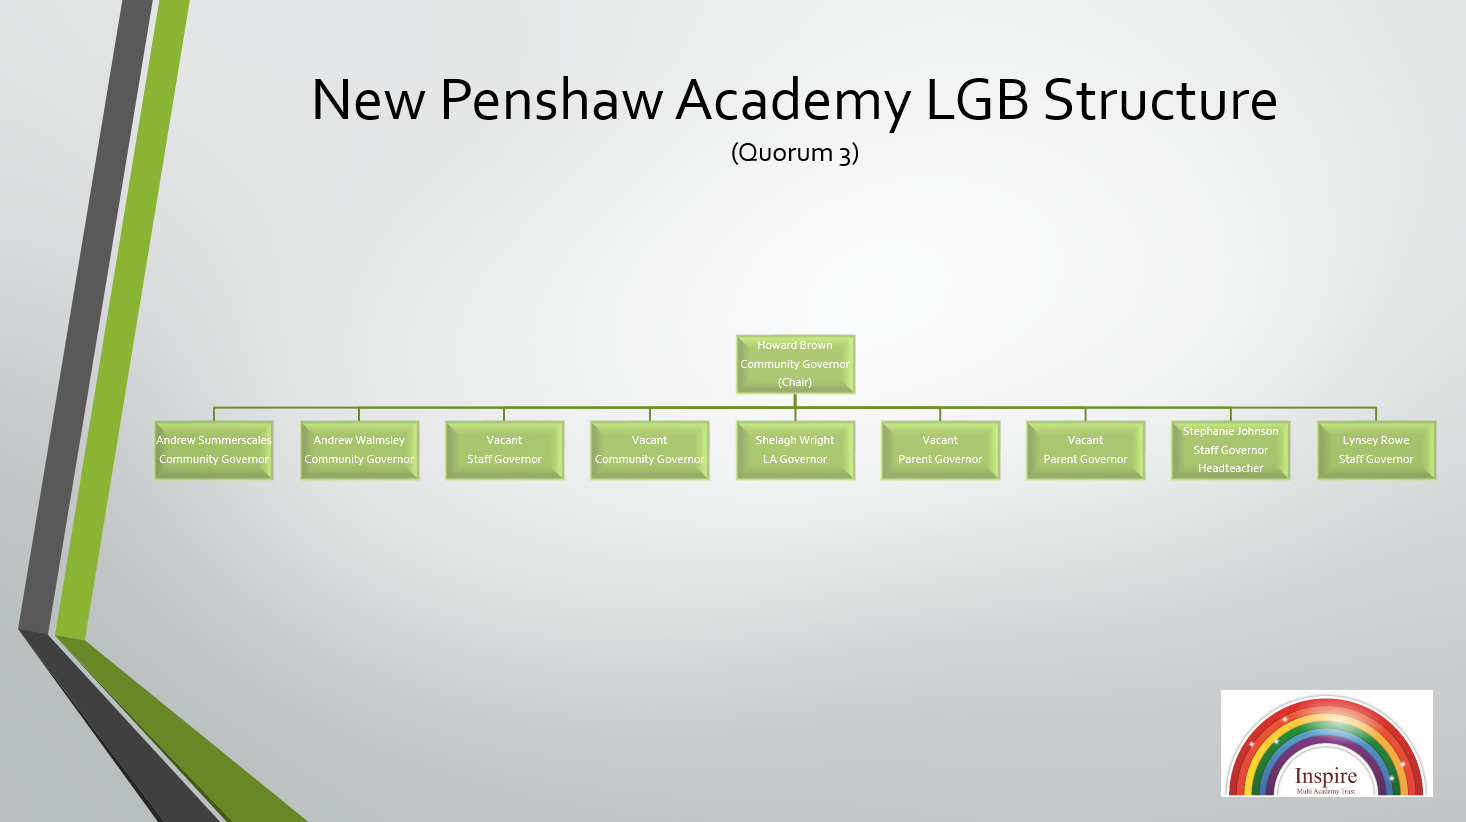 New Penshaw